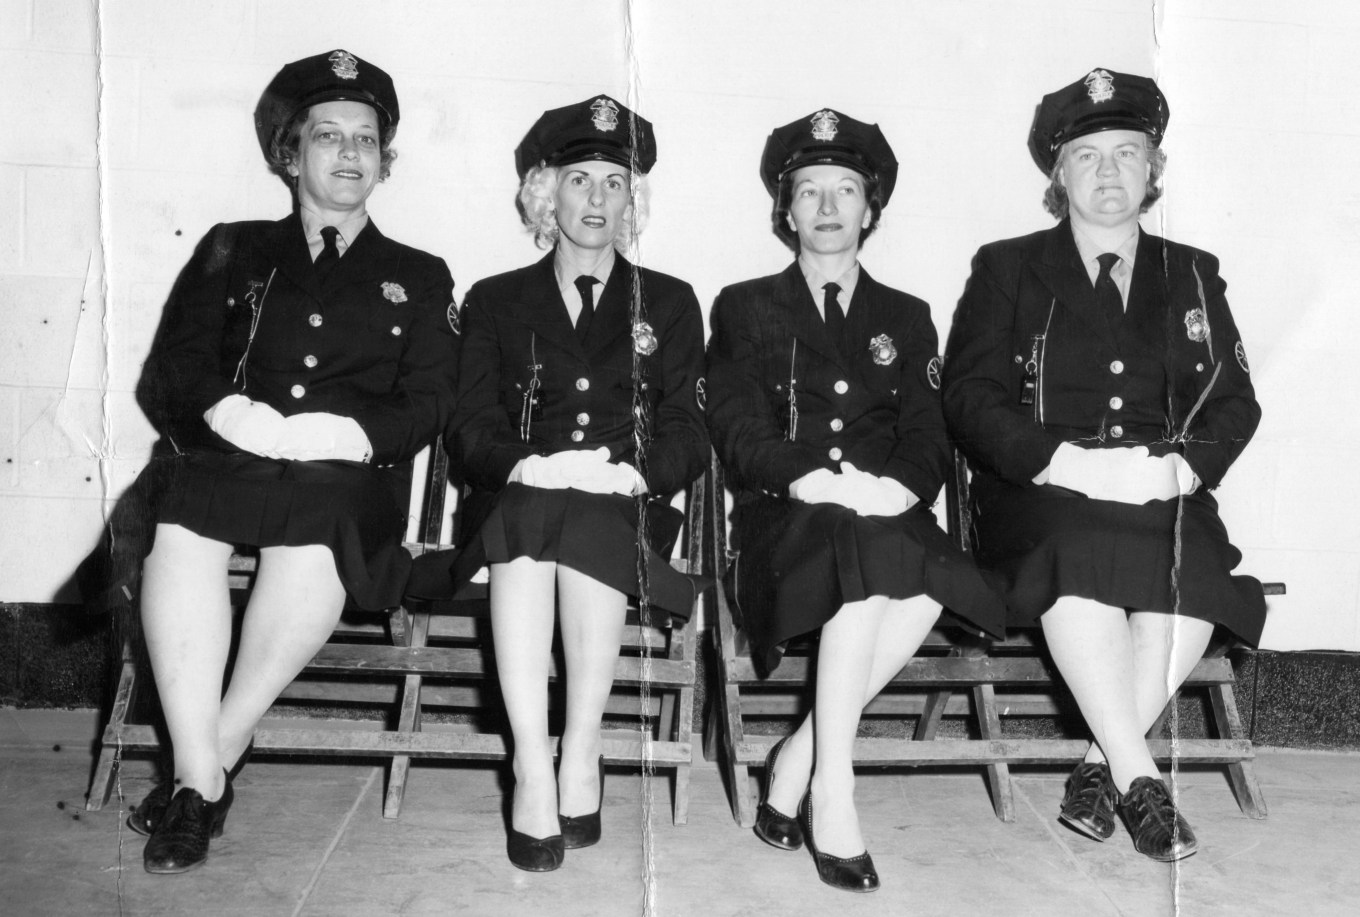 Police matrons sitting, Burlington MA